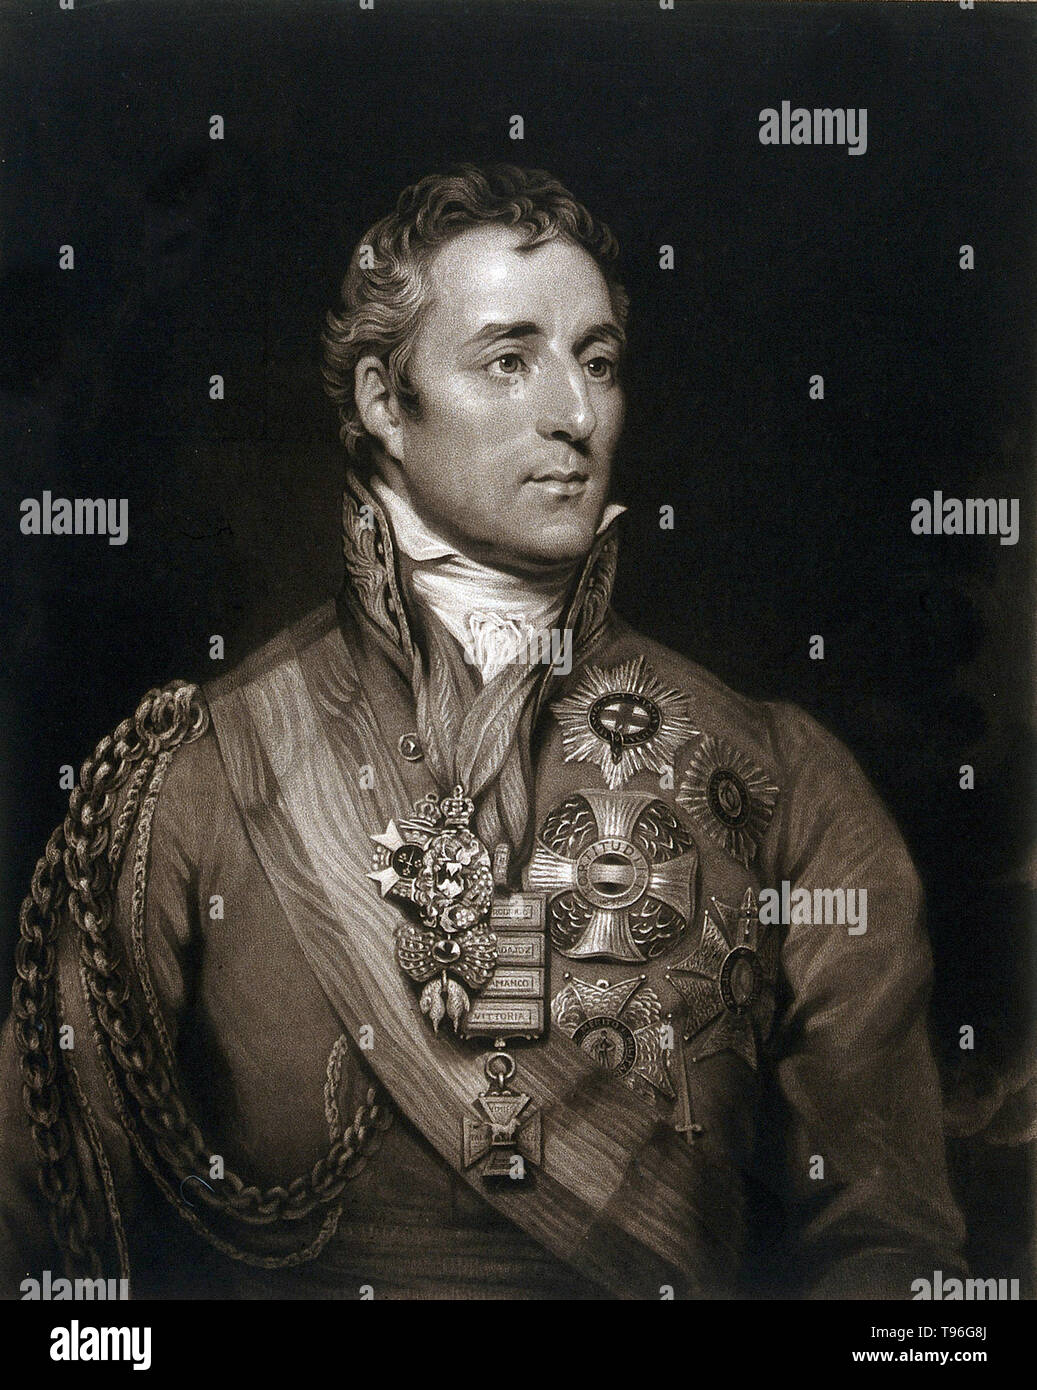 Arthur Wellesley, 1st Duke of Wellington (May 1, 1769 - September 14, 1852), was an Anglo-Irish soldier and statesman. Wellesley rose to prominence as a general during the Peninsular campaign of the Napoleonic Wars, and was promoted to the rank of field marshal after leading the allied forces to victory against the French Empire at the Battle of Vitoria in 1813. Following Napoleon's exile in 1814, he served as the ambassador to France and was granted a dukedom. During the Hundred Days in 1815, he commanded the allied army which, together with a Prussian army under Blücher, defeated Napoleon at - Stock Image